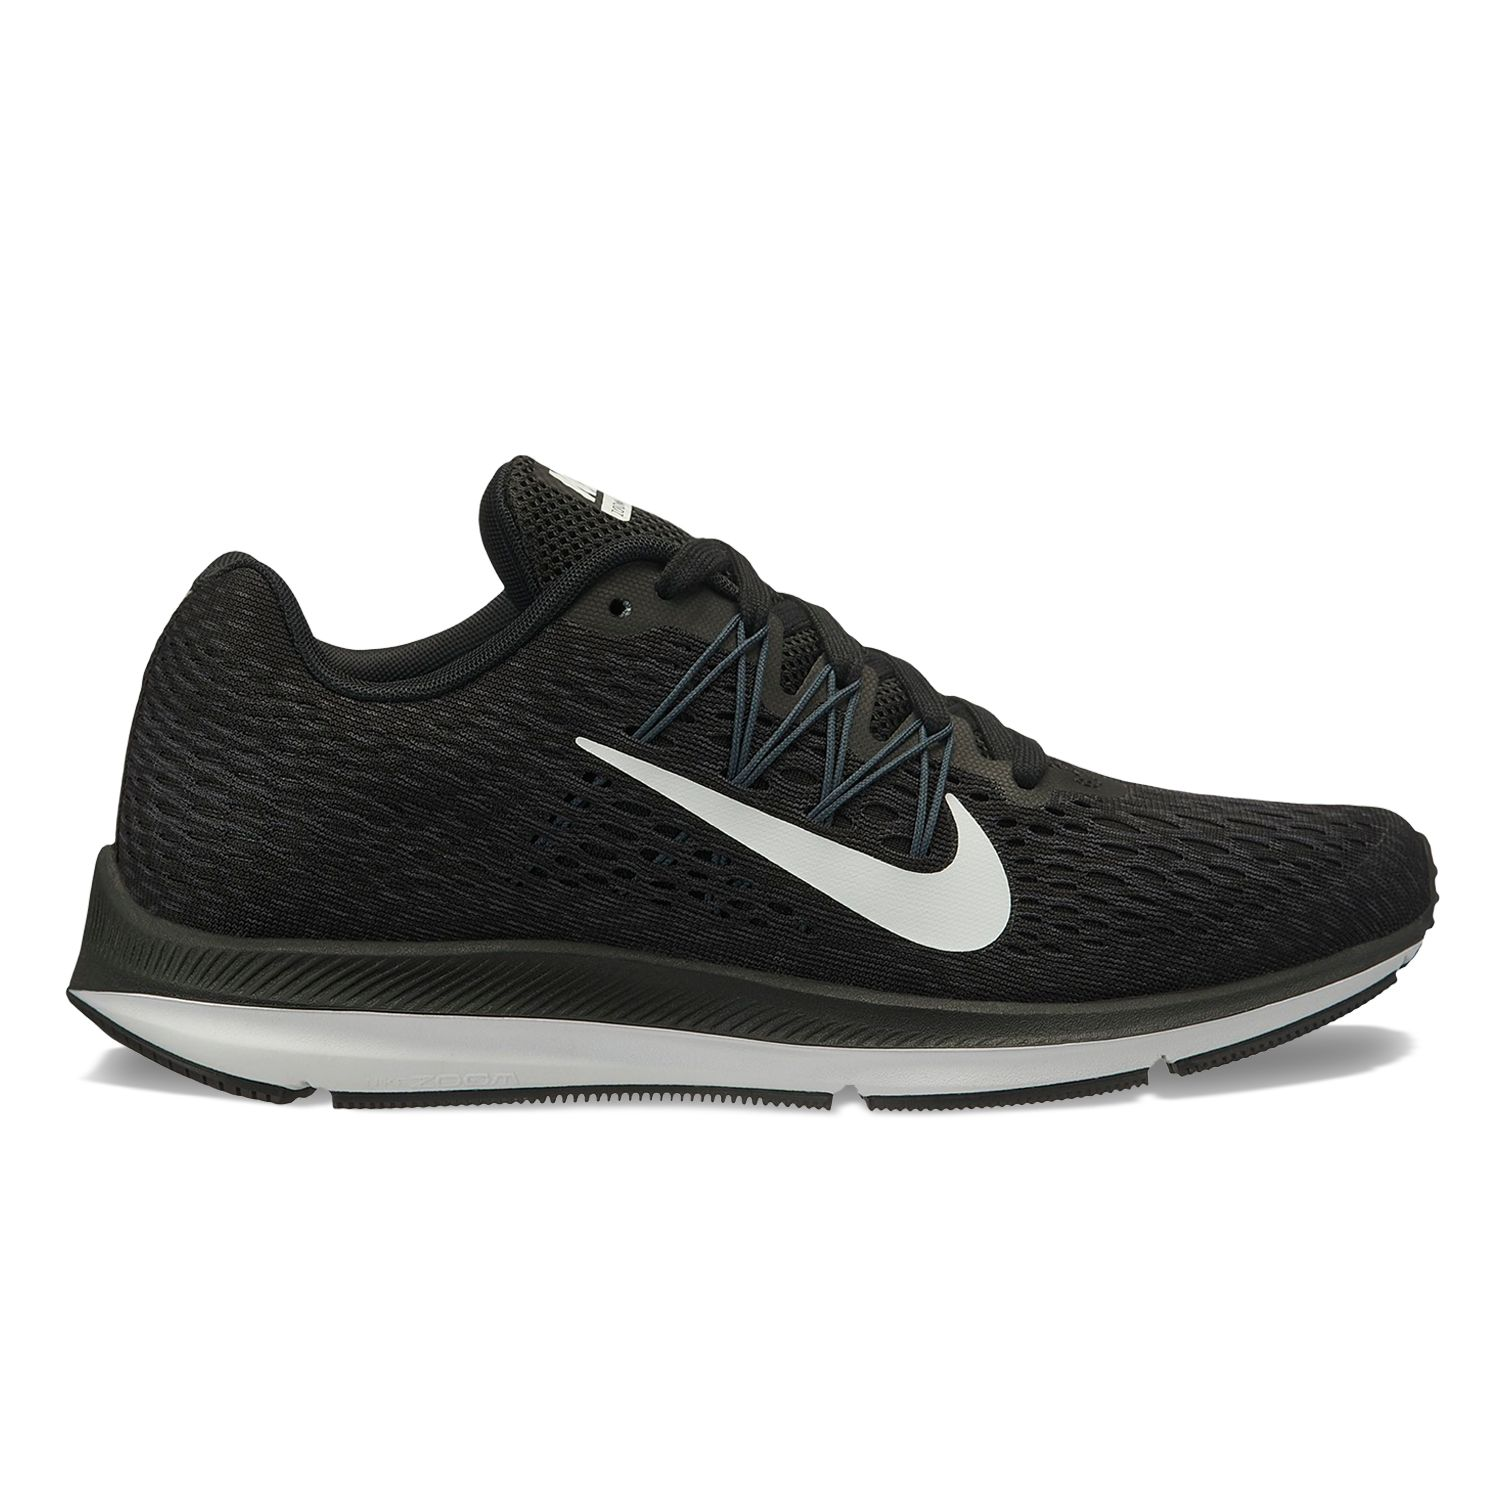 018691336da0 All Nike Air Zoom Shoes - Style Guru  Fashion